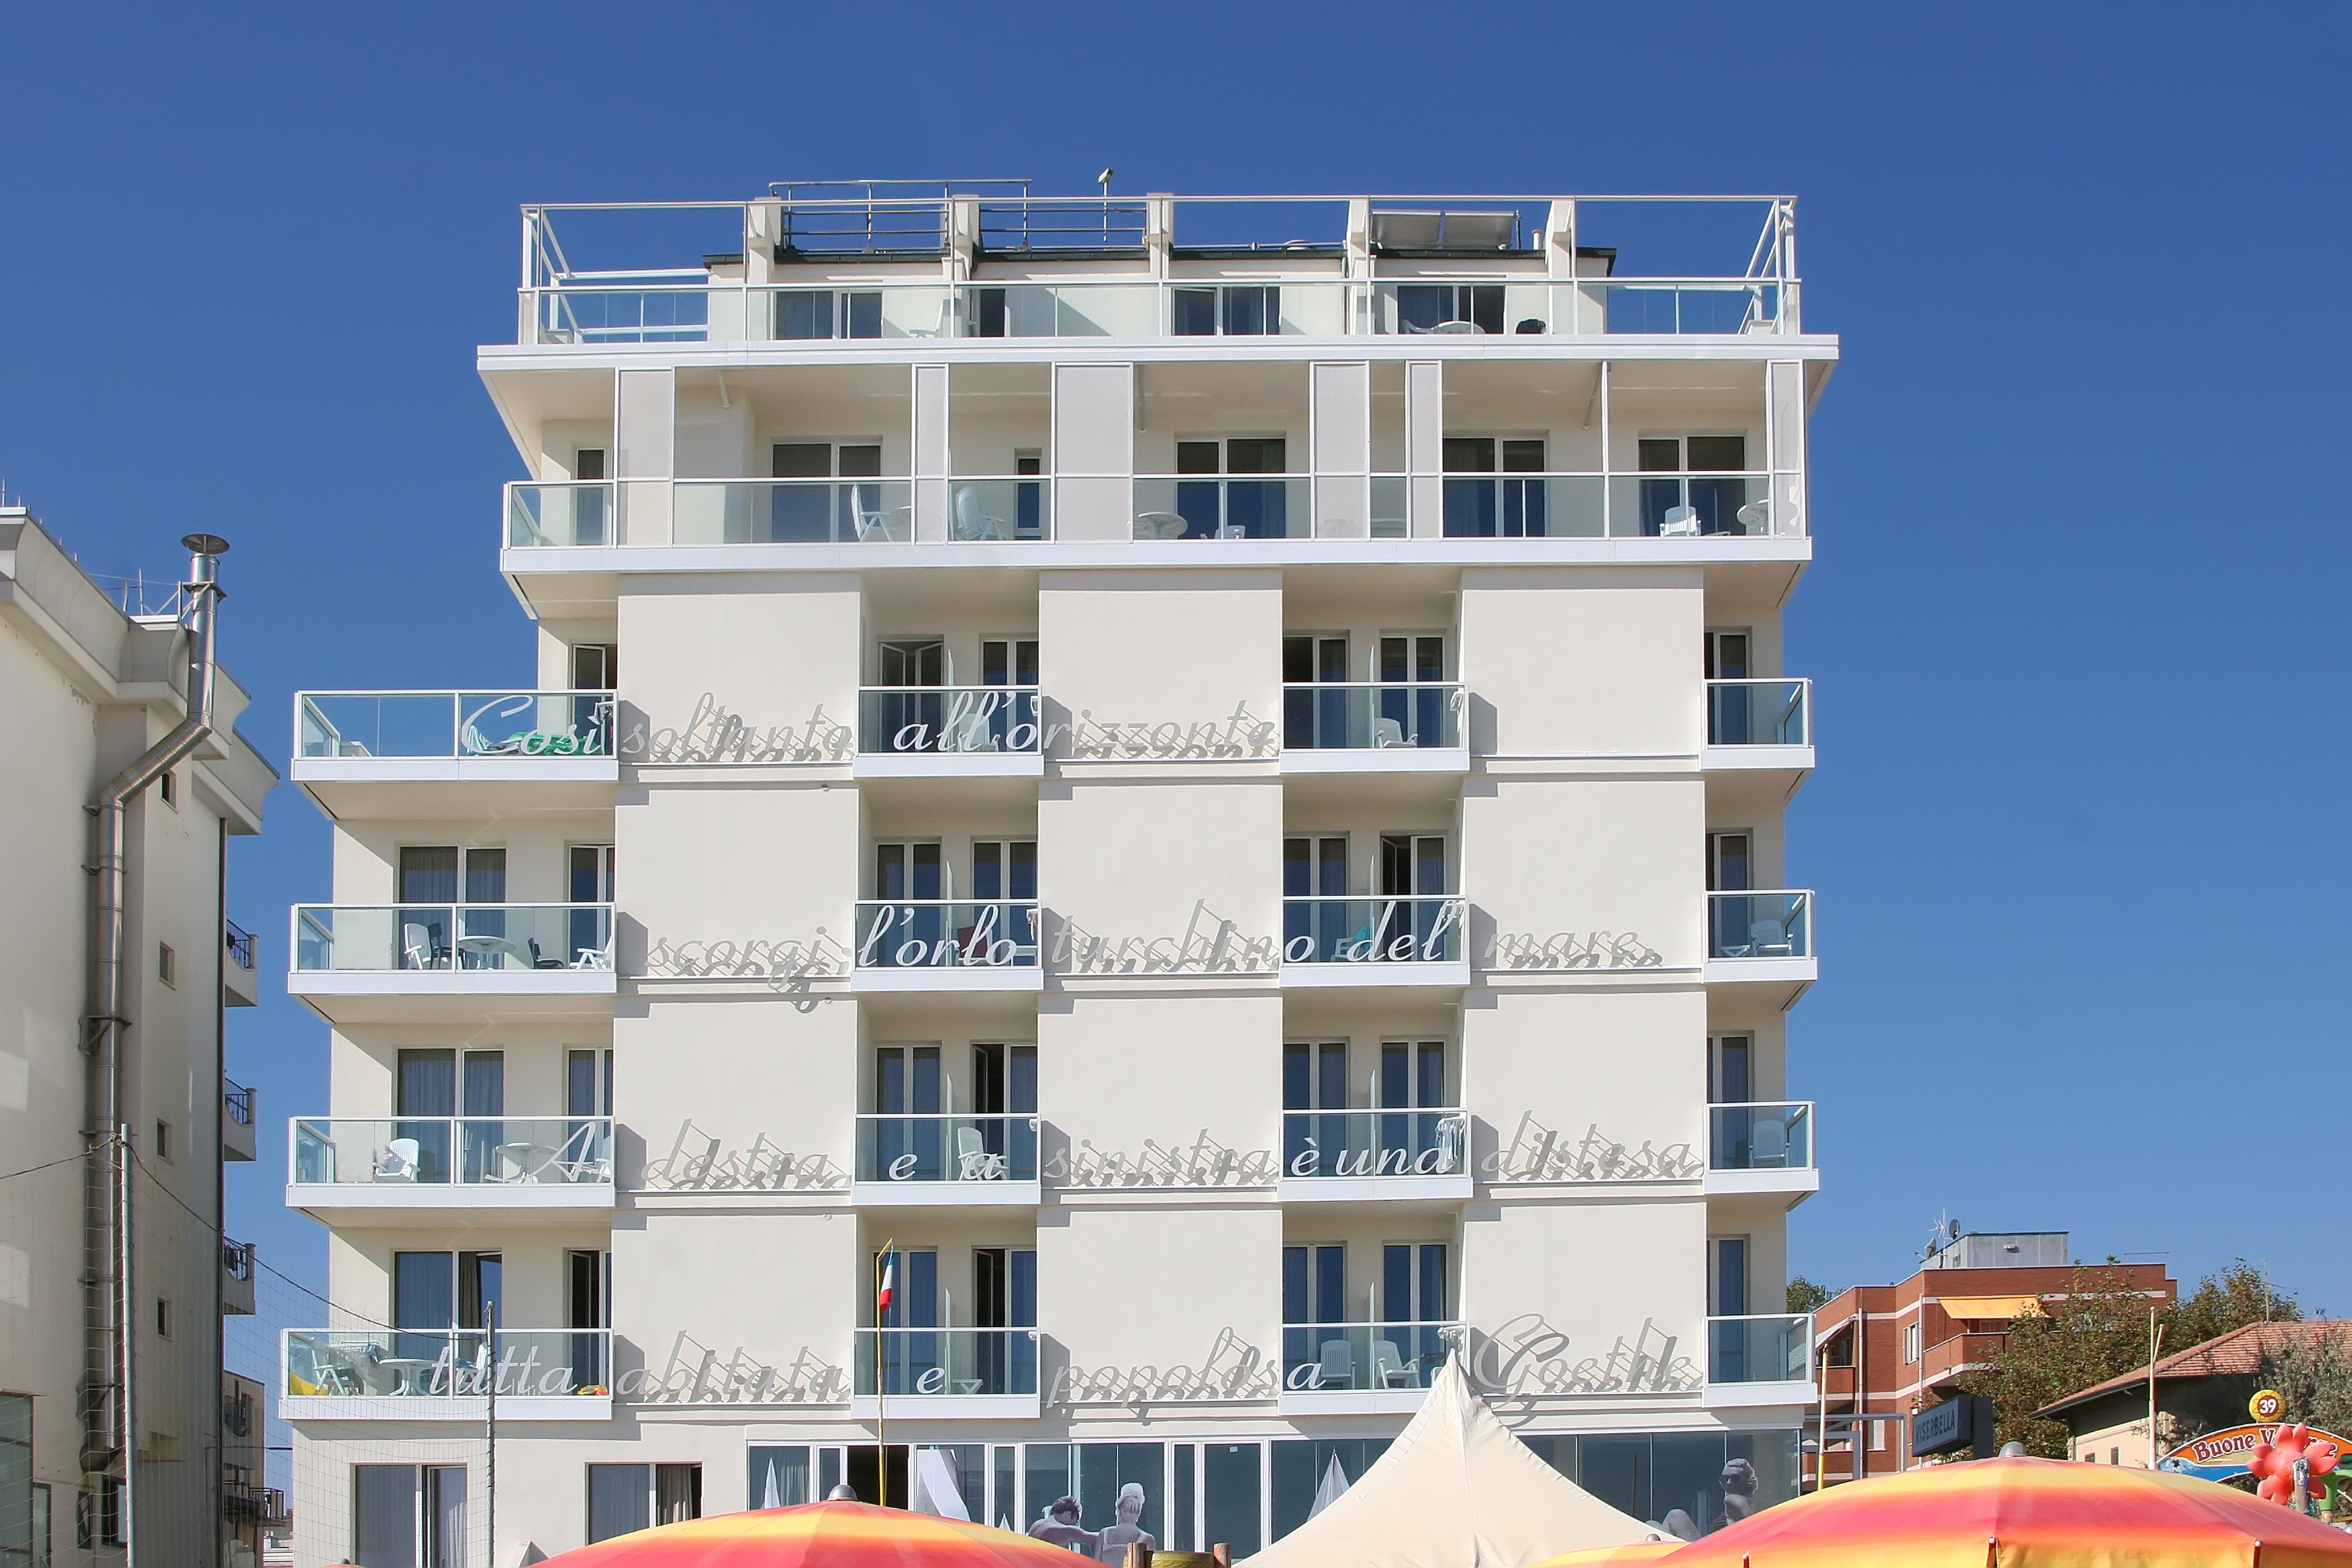 hotel stockolm rimini - photo#22